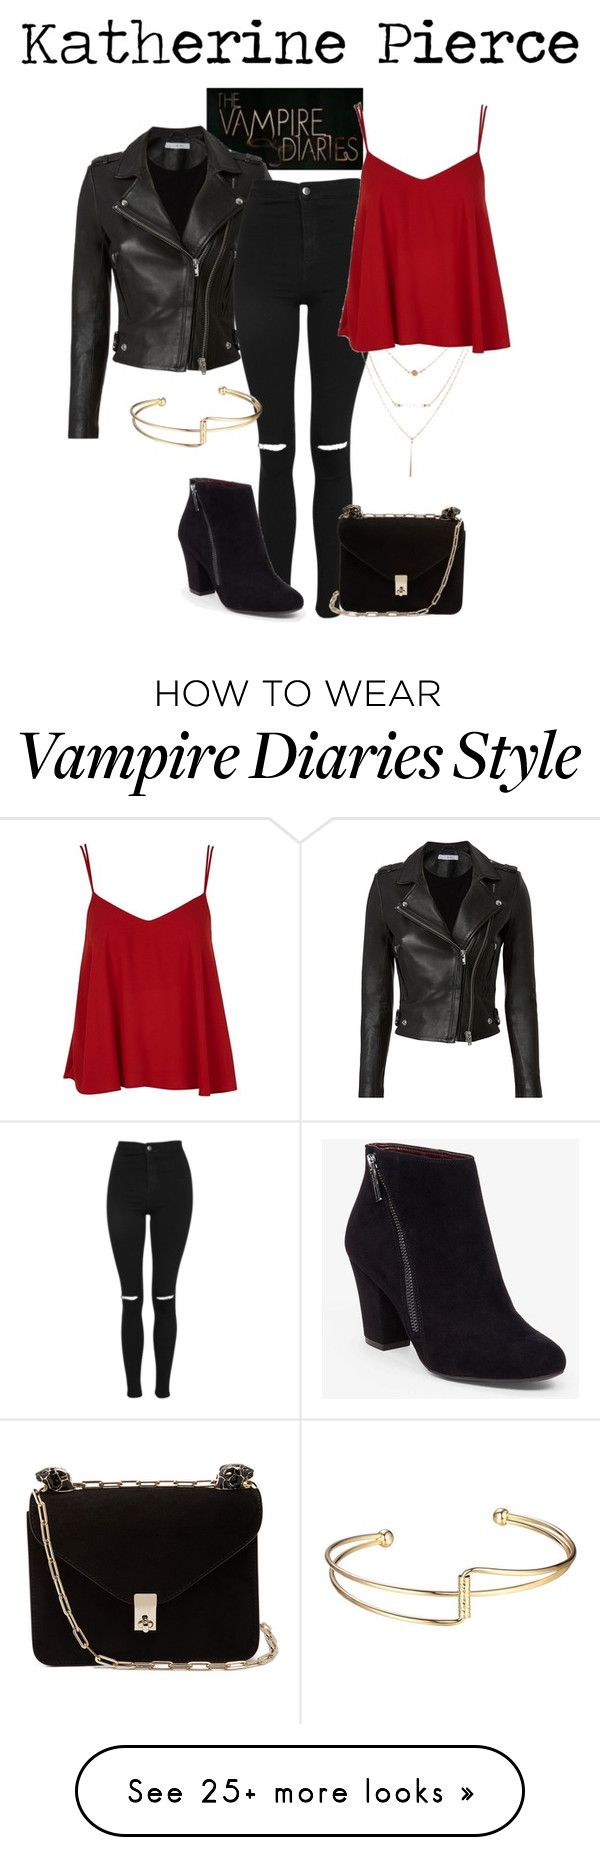 """Katherine Pierce"" by weasleysweaters on Polyvore featuring IRO, Topshop, BCBGeneration, Valentino, NinaDobrev, vampirediaries, KatherinePierce, thevampirediaries and katherine"